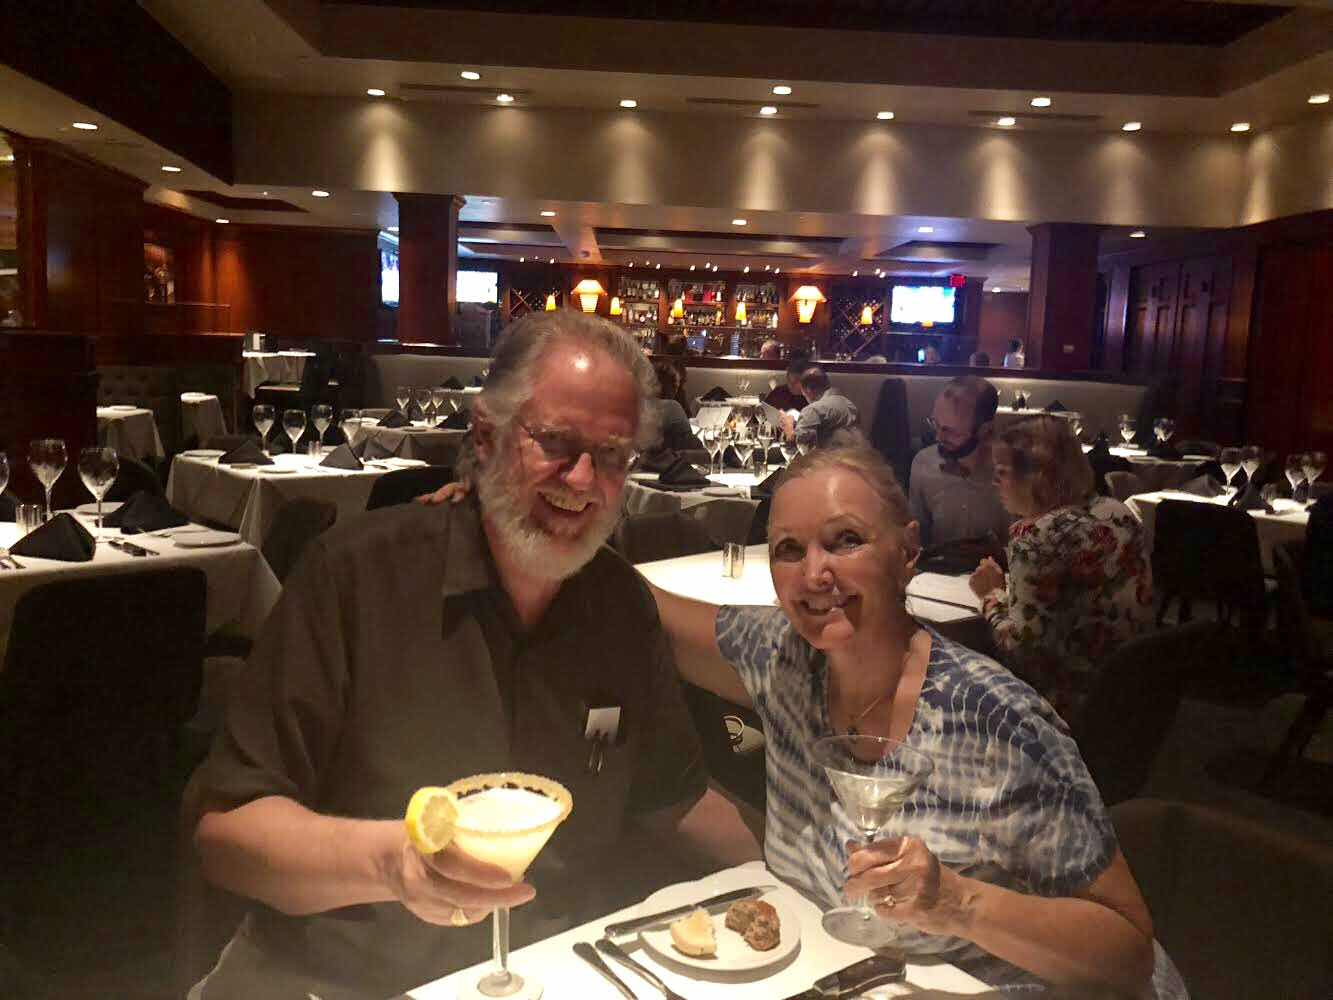 Resident Astronomers console their clouded out nights with martinis at Fleming's Steakhouse (Source: Palmia Observatory